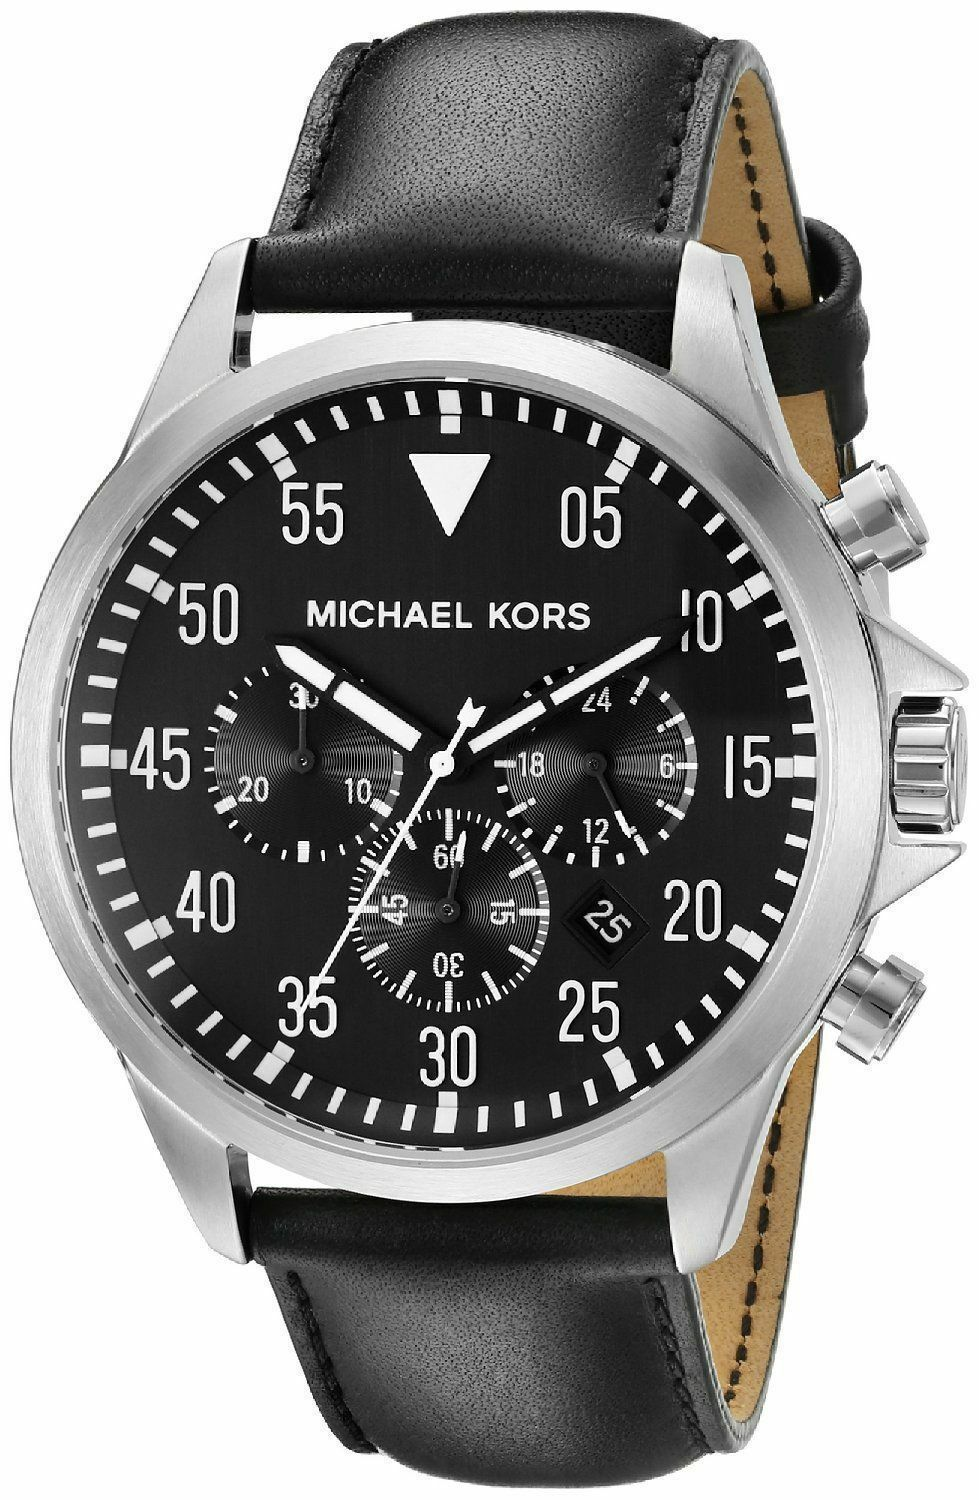 eef55a47473d NWT Michael Kors Men s Watch Silver SS Case   Black Leather GAGE ...